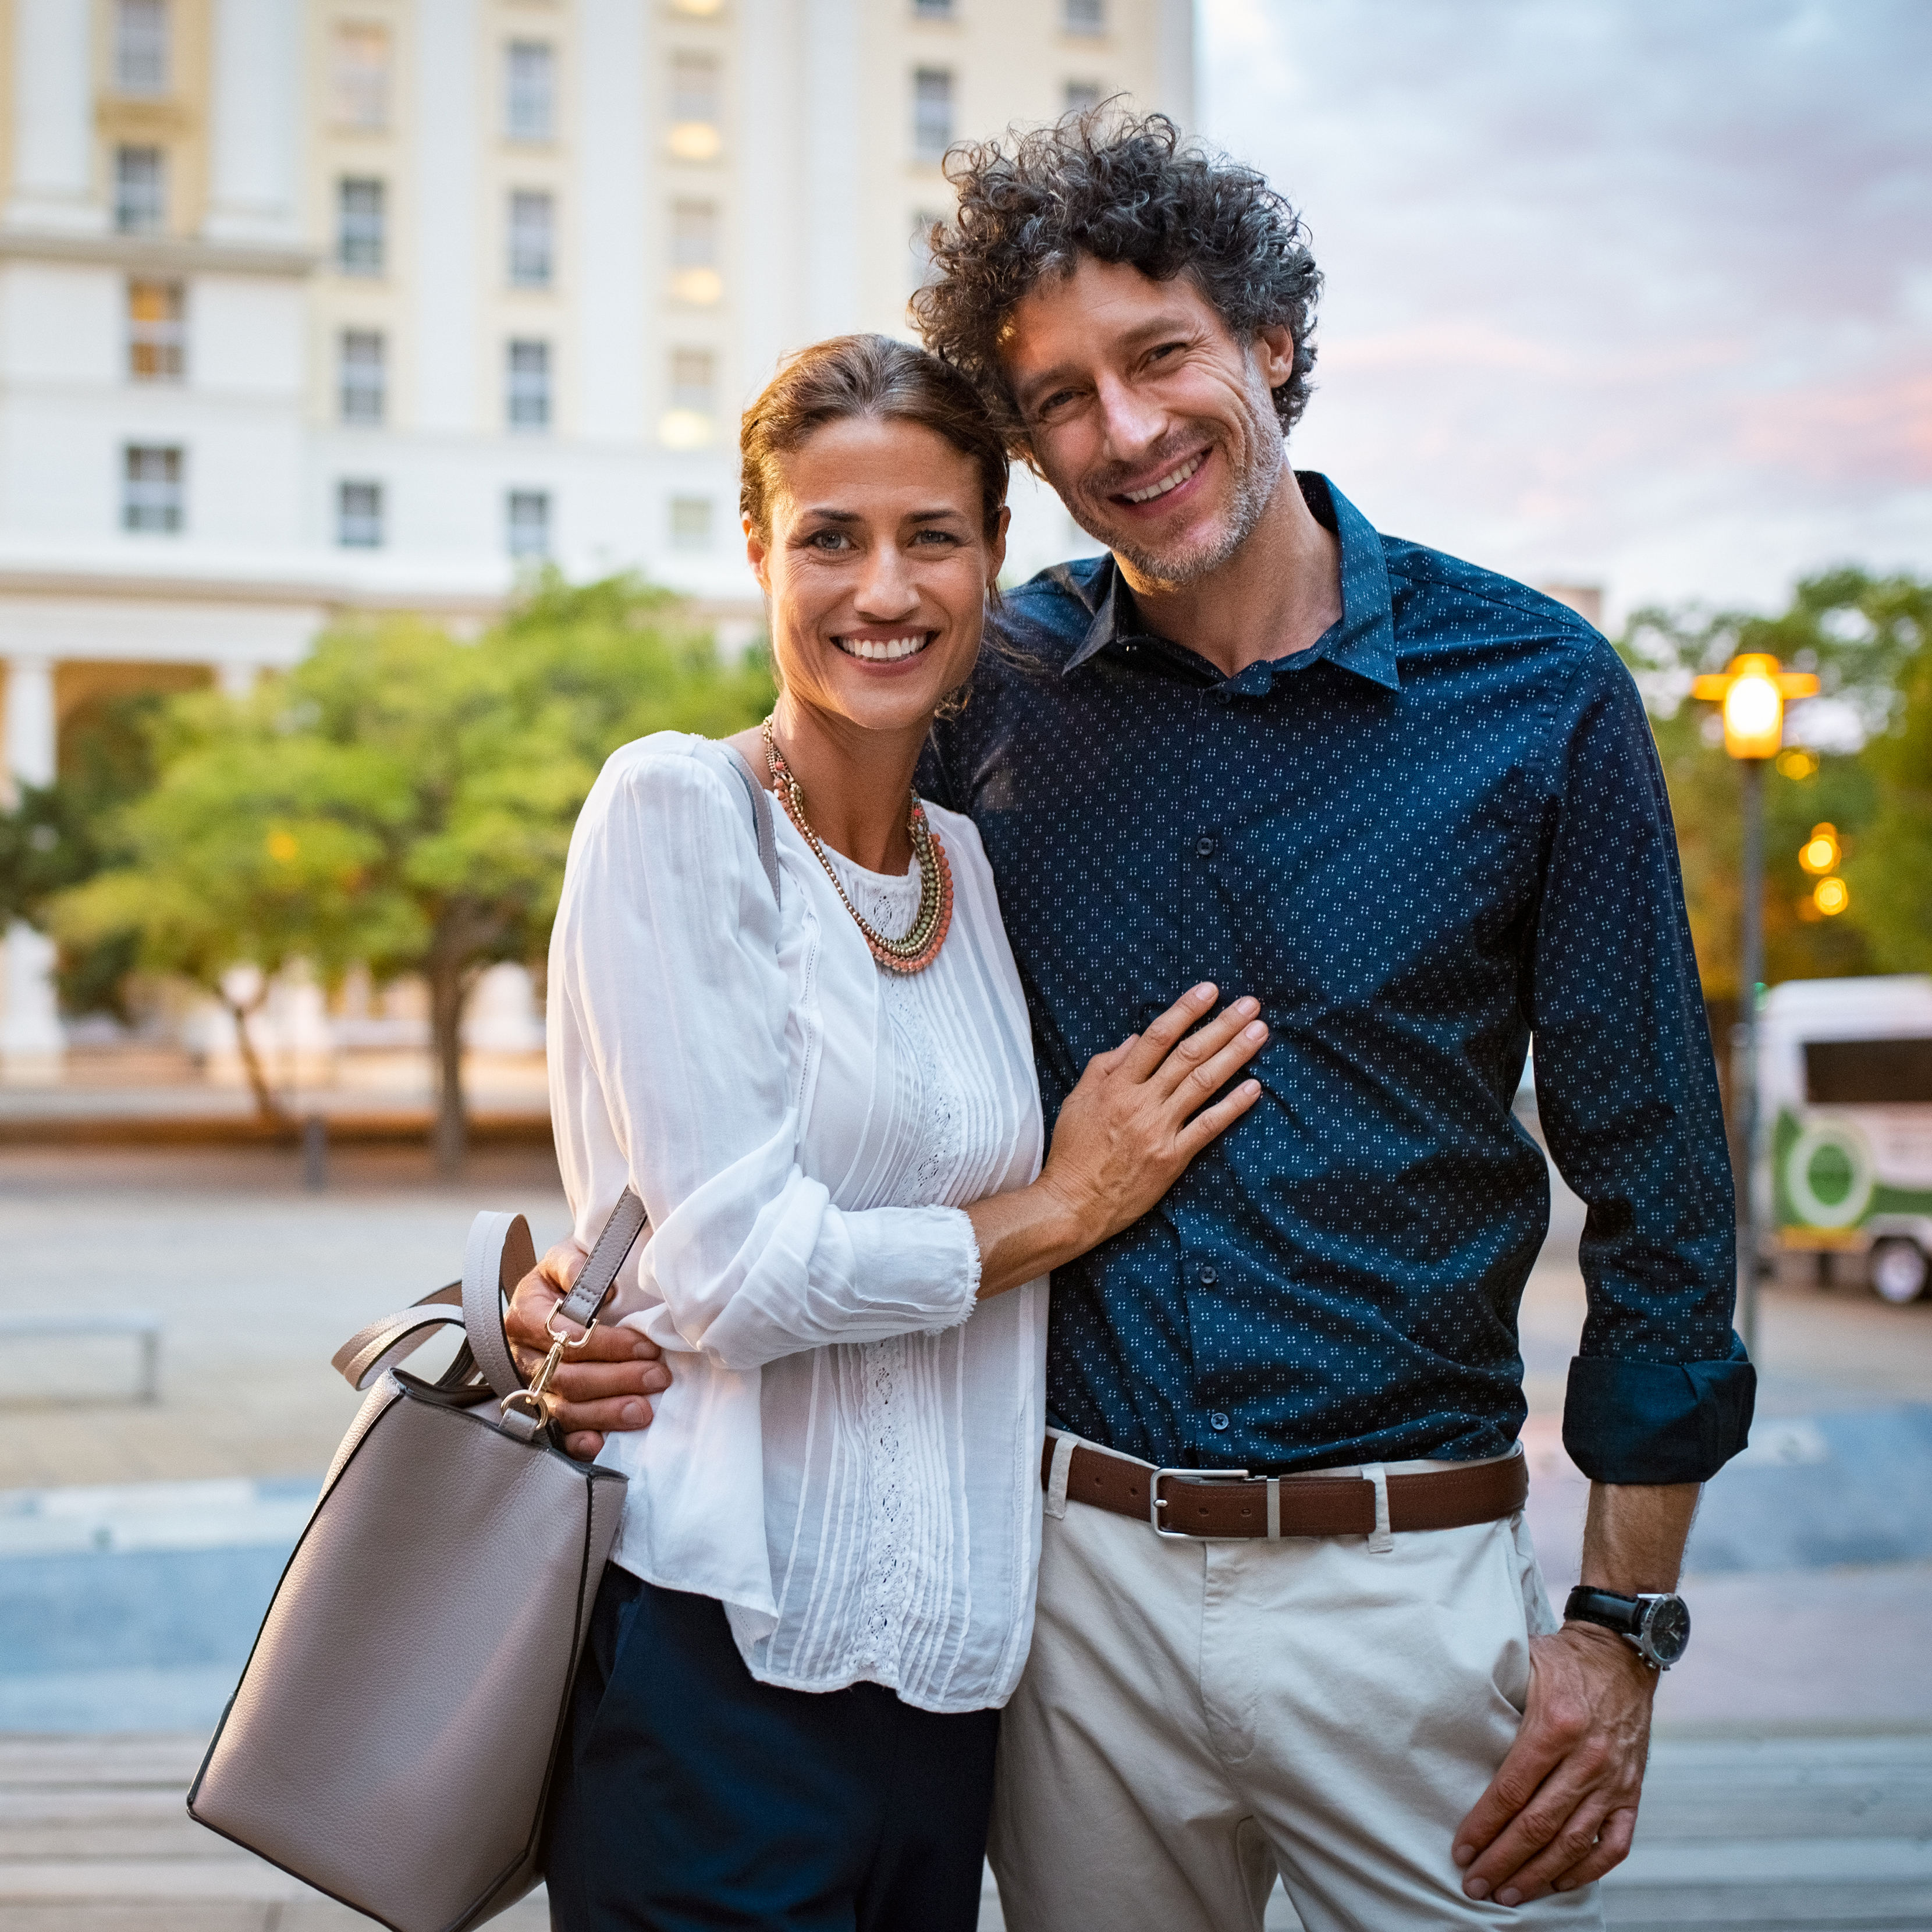 a smiling middle-aged couple, standing together in an outdoor city plaza